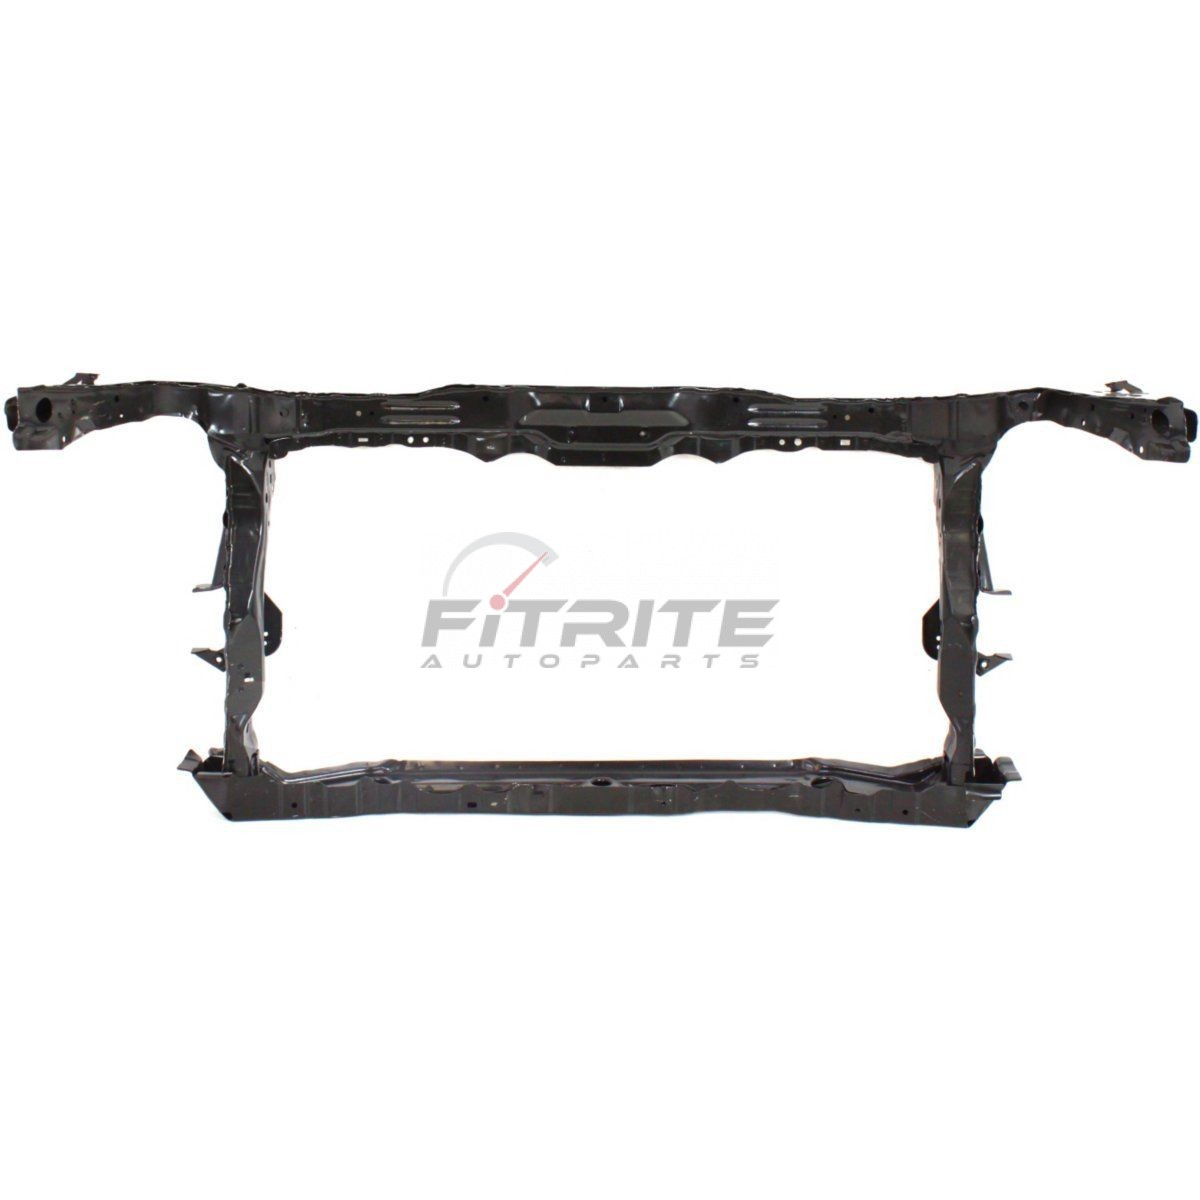 NEW RADIATOR SUPPORT ASSEMBLY FOR 2009-2010 ACURA TSX